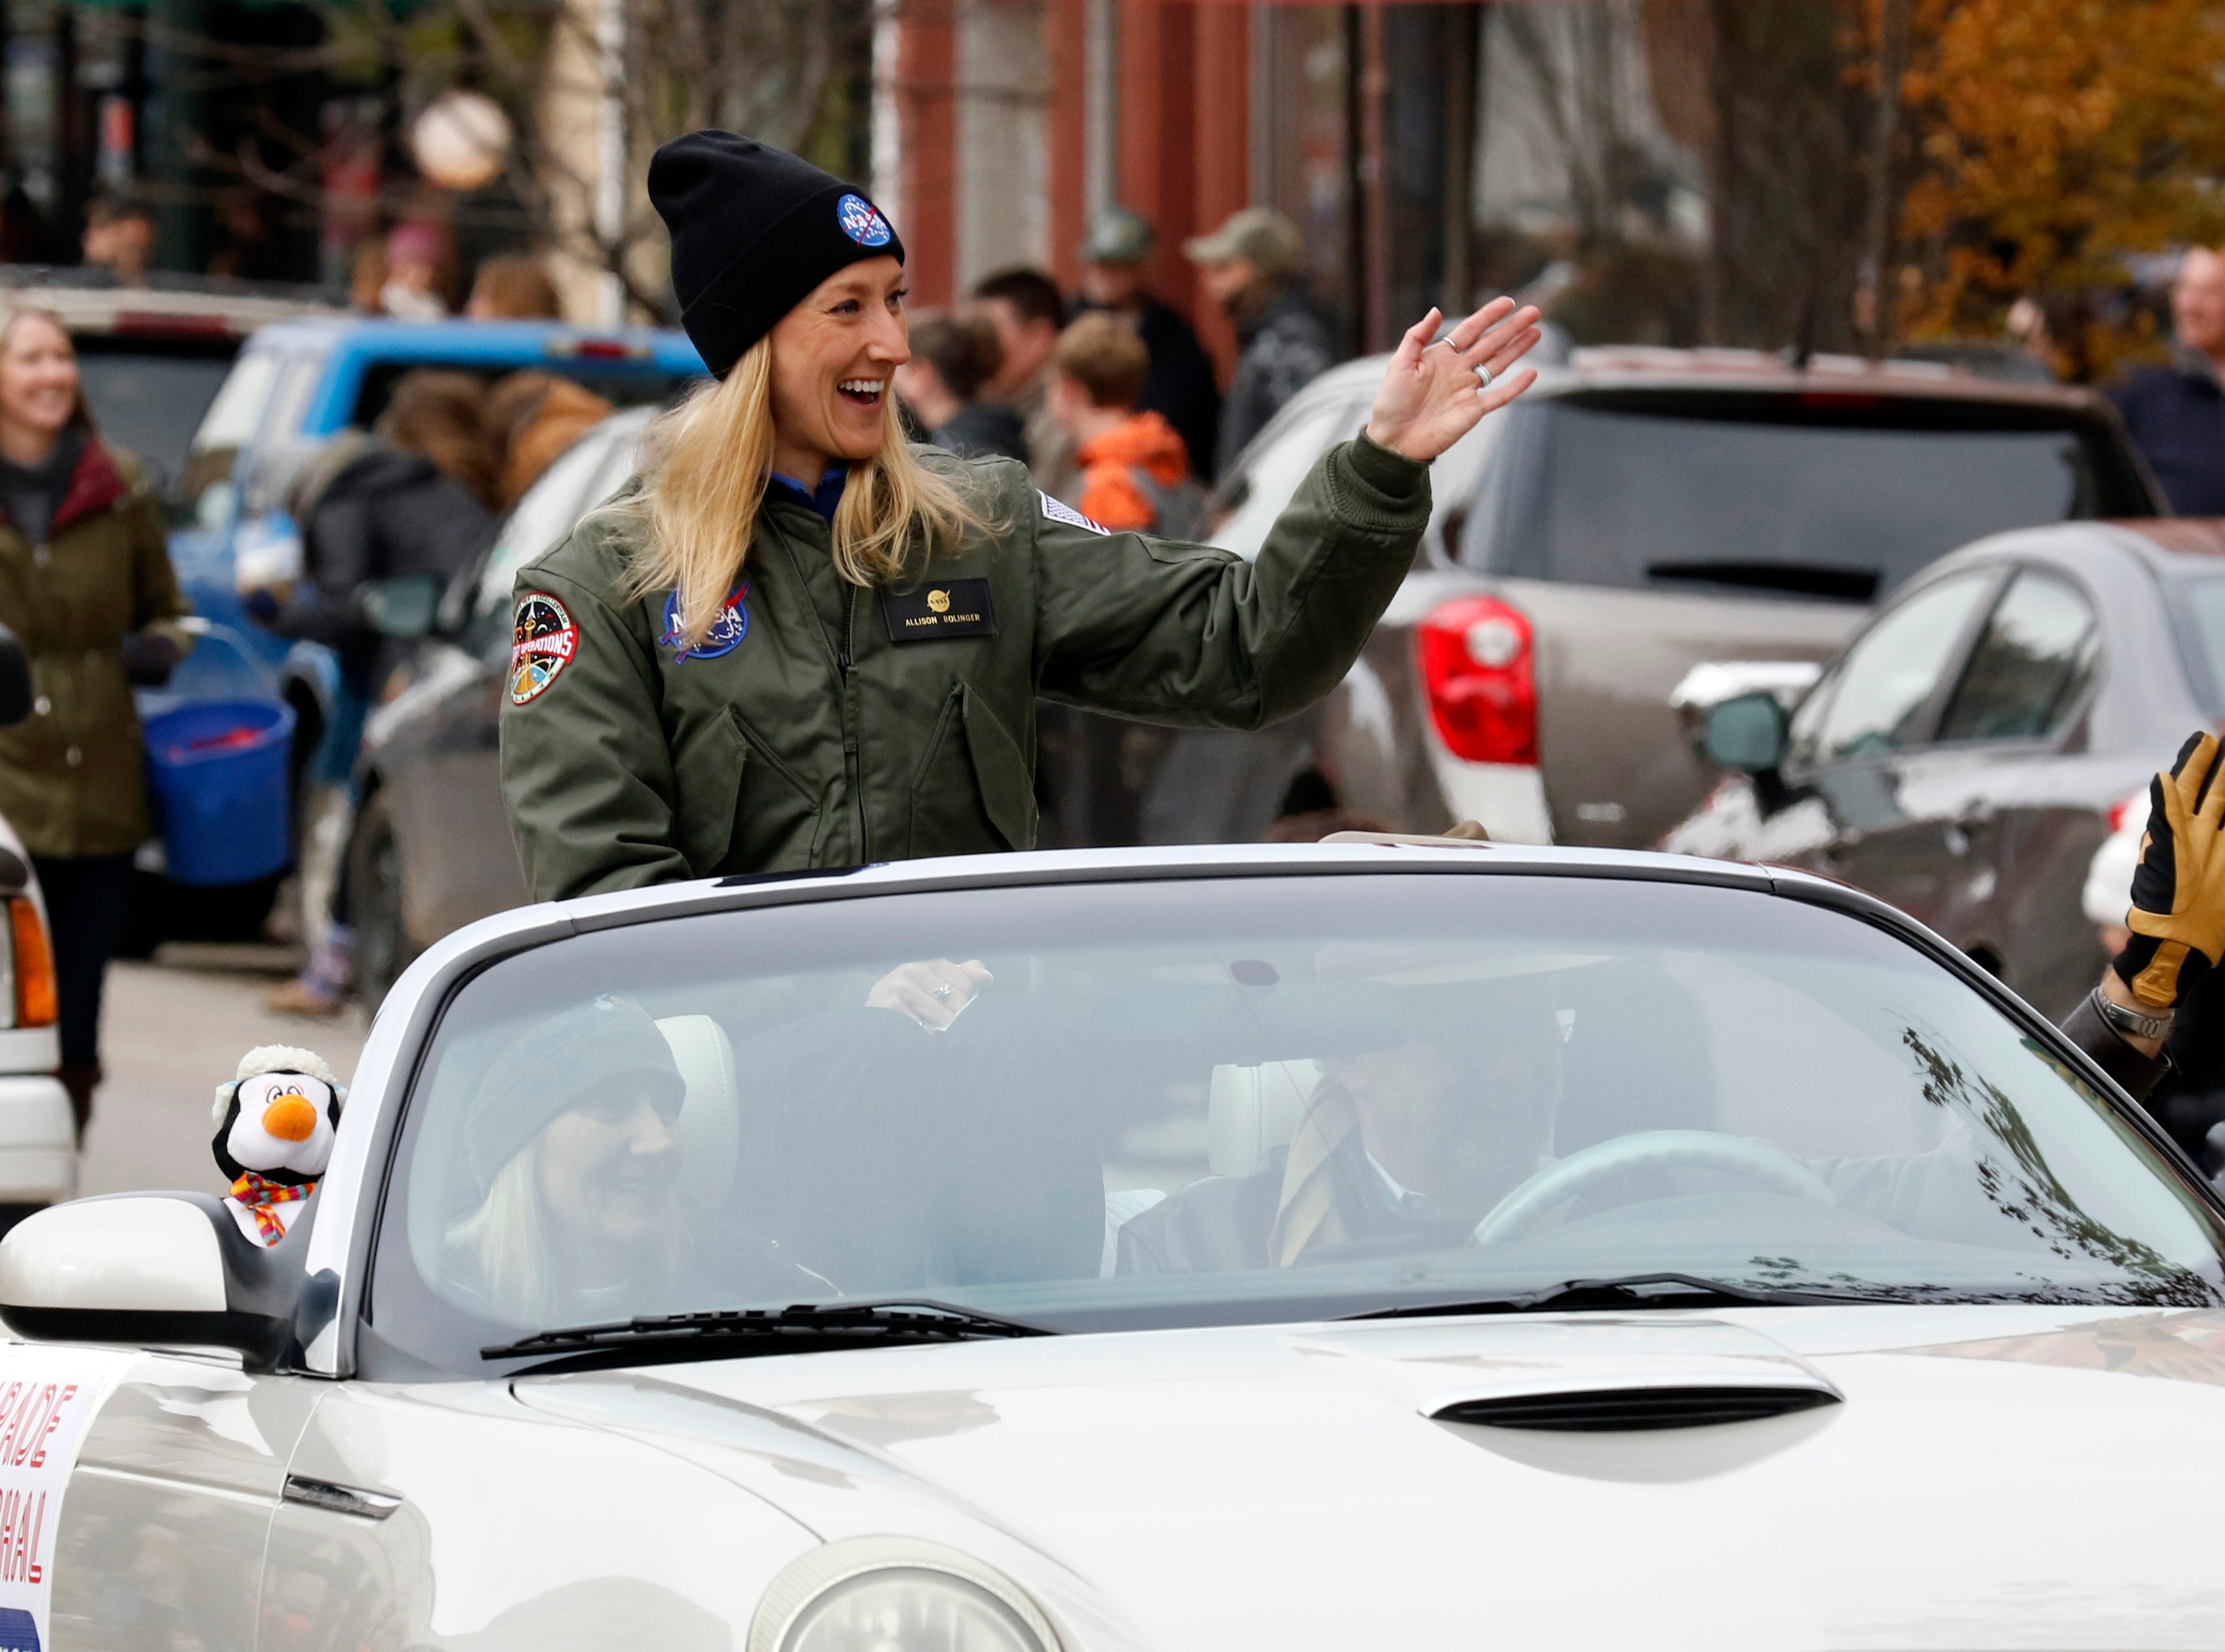 Allison Bolinger, a Lancaster native, waves to people along parade route Saturday, Nov. 17, 2018, during the Lancaster Holiday Festival Parade in downtown Lancaster. Bolinger was named a NASA flight director earlier and served as the grand marshal of the parade.